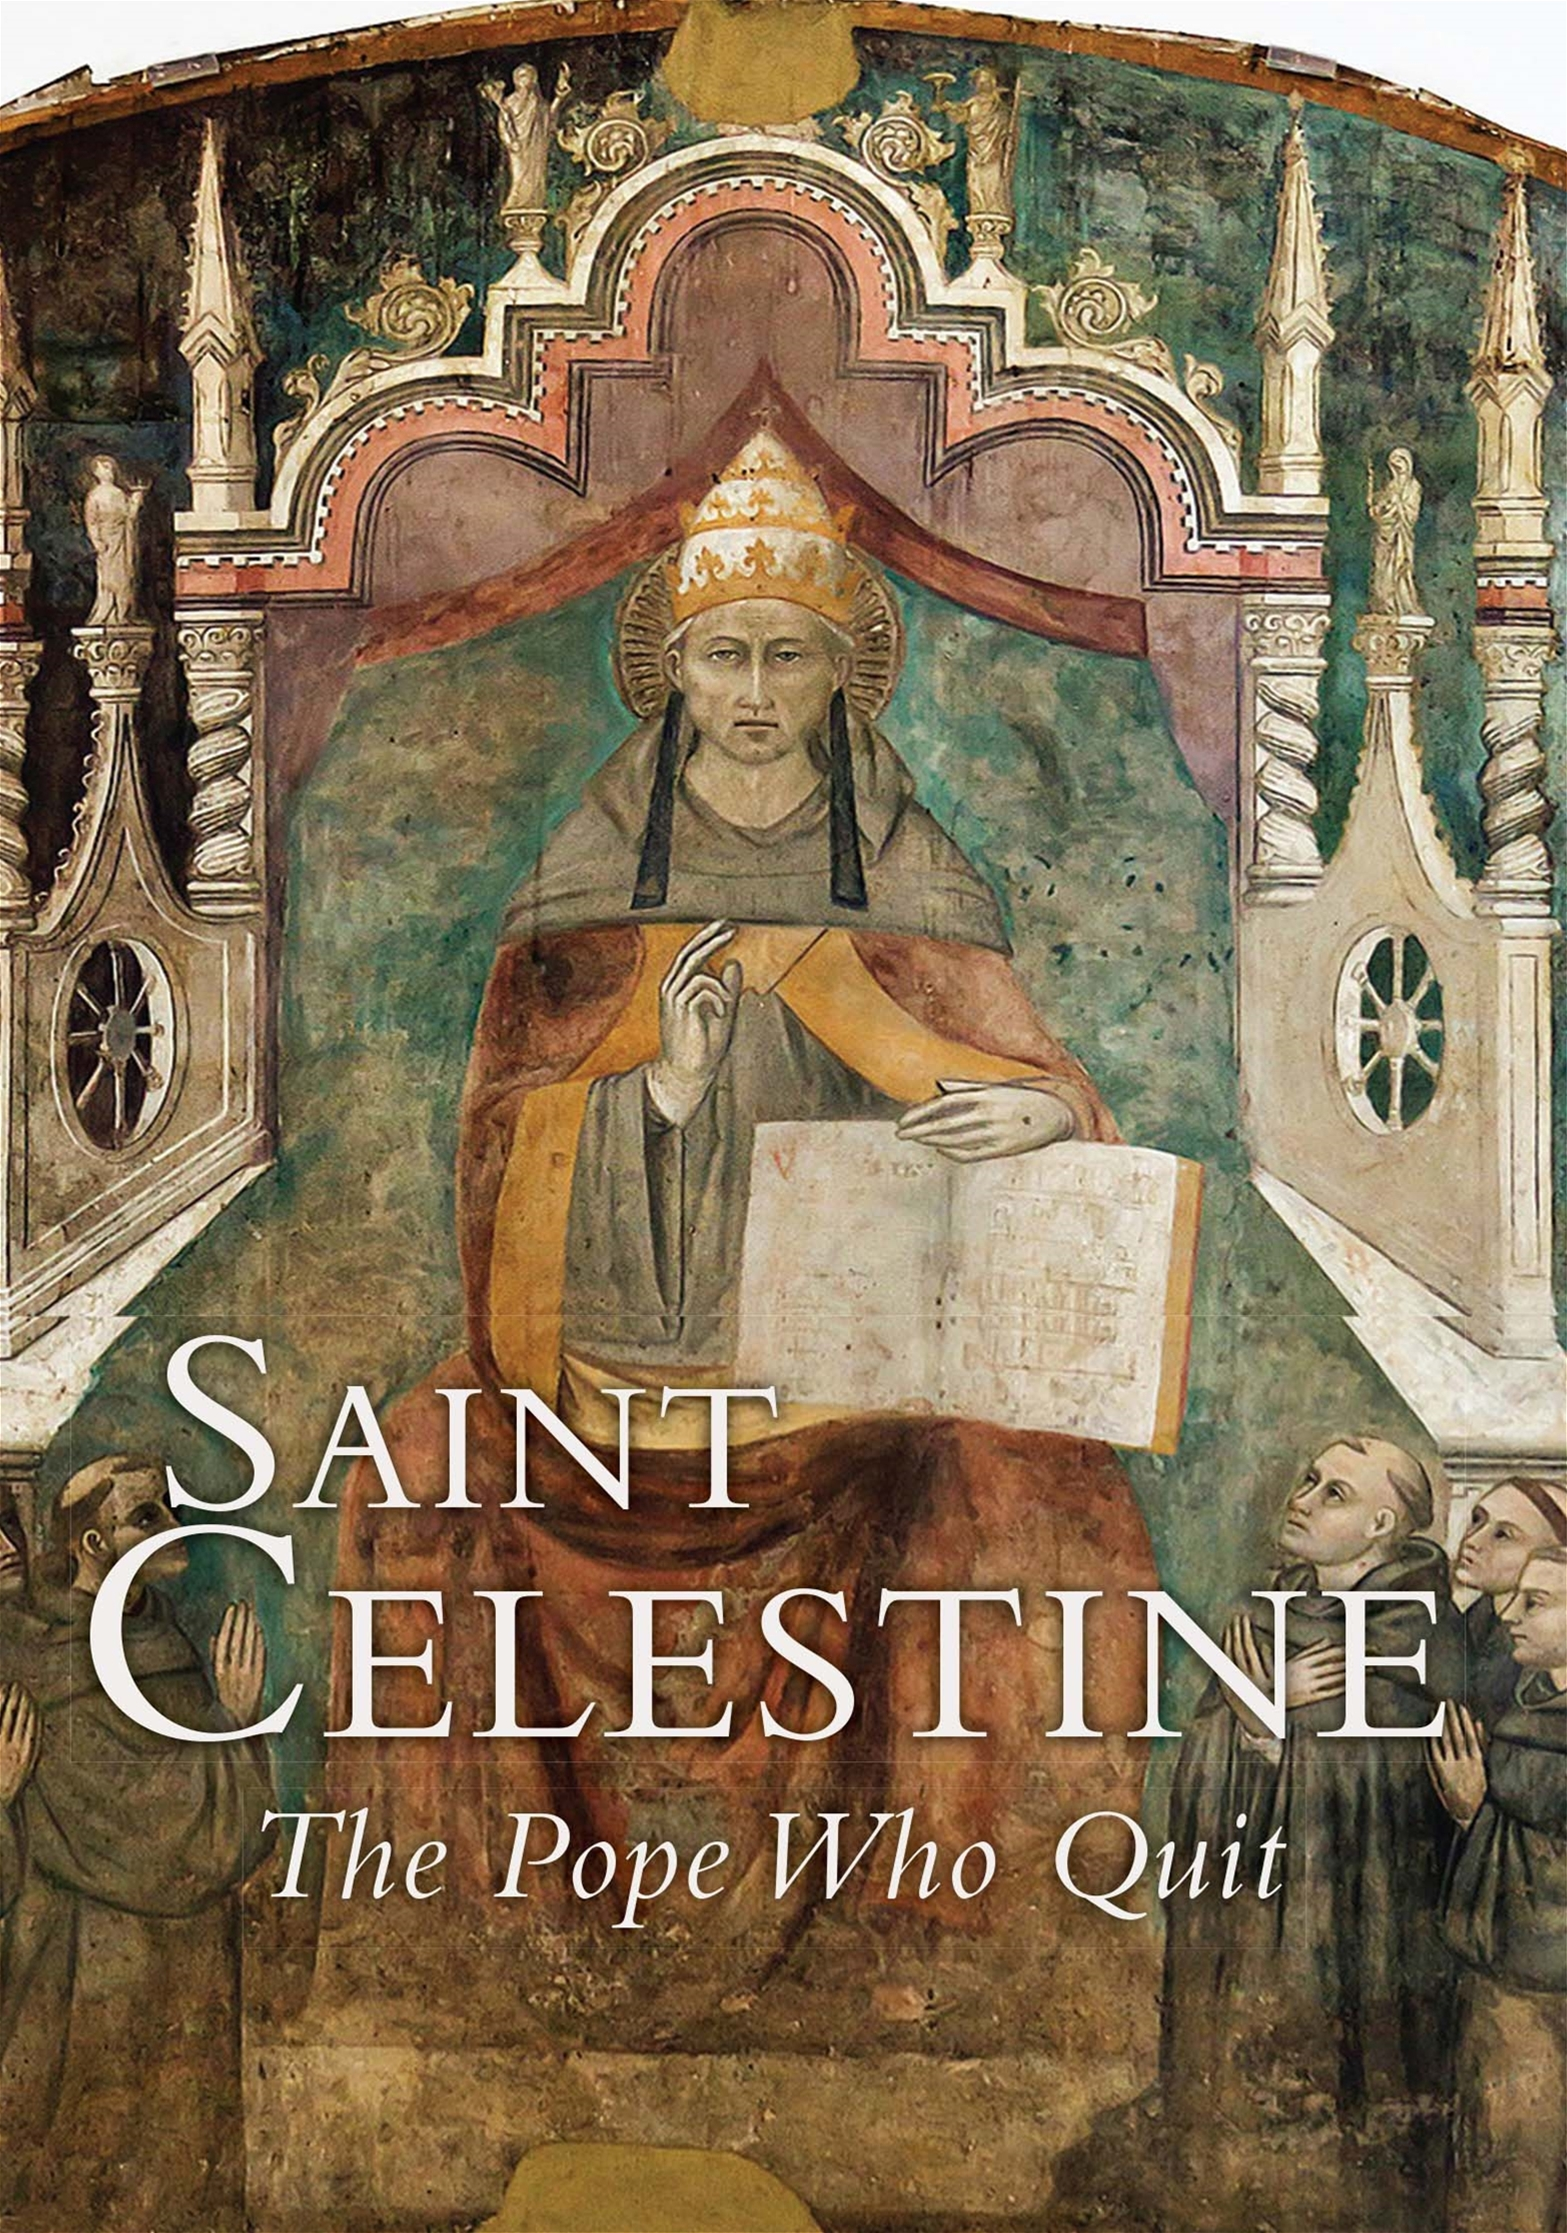 Documentary on Saint Celestine (The Pope who Quit)